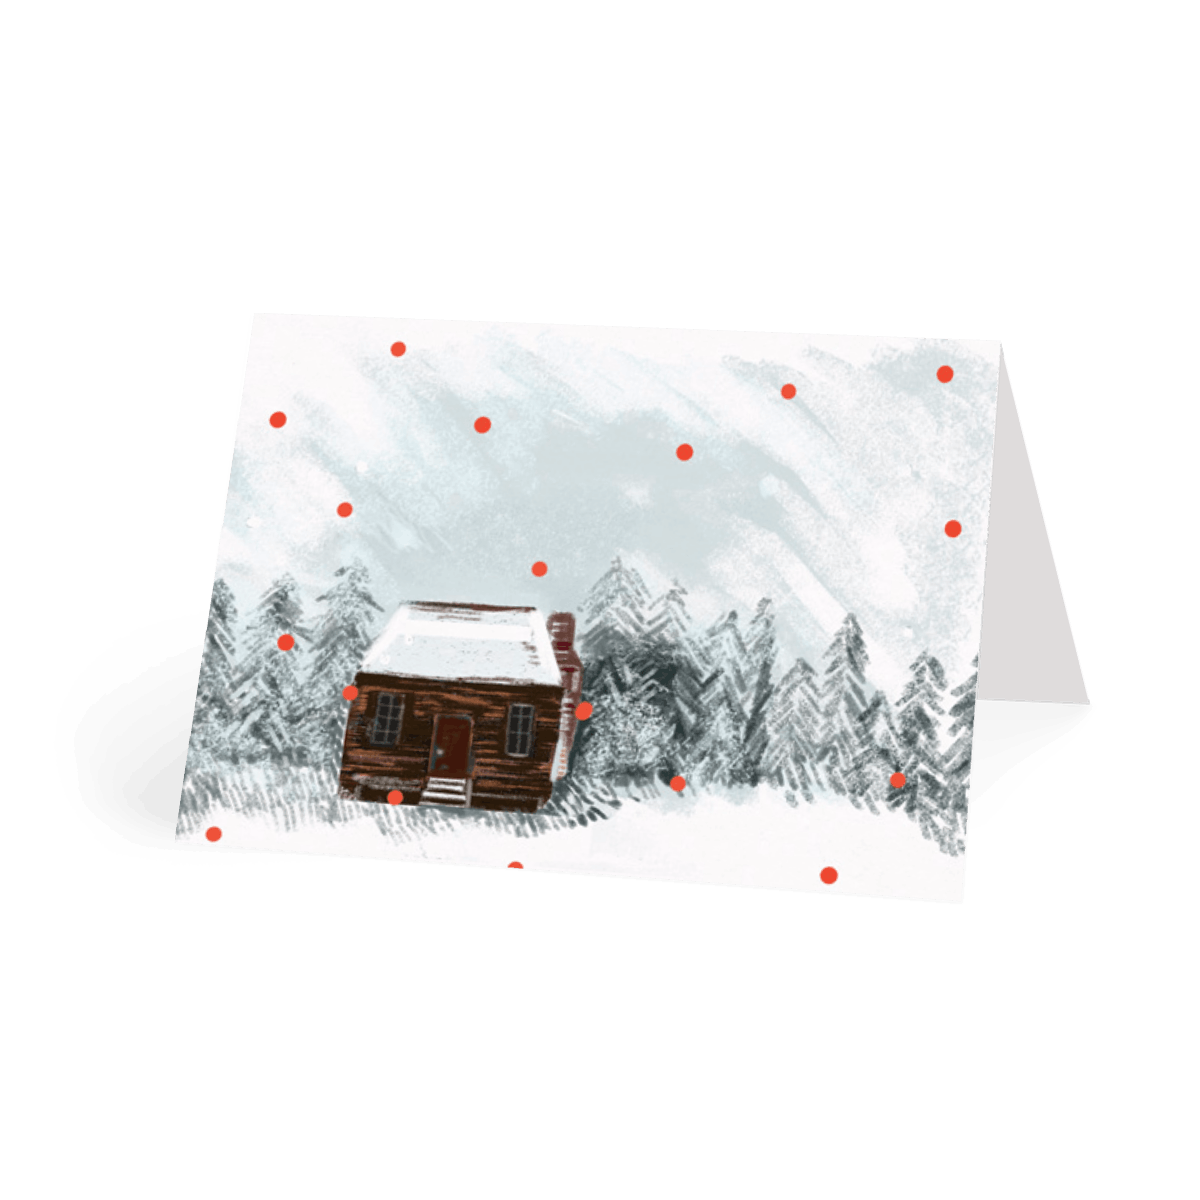 Https%3a%2f%2fwww.papier.com%2fproduct image%2f29683%2f14%2fhappy holidays winter cabin 7483 front 1508422751.png?ixlib=rb 1.1